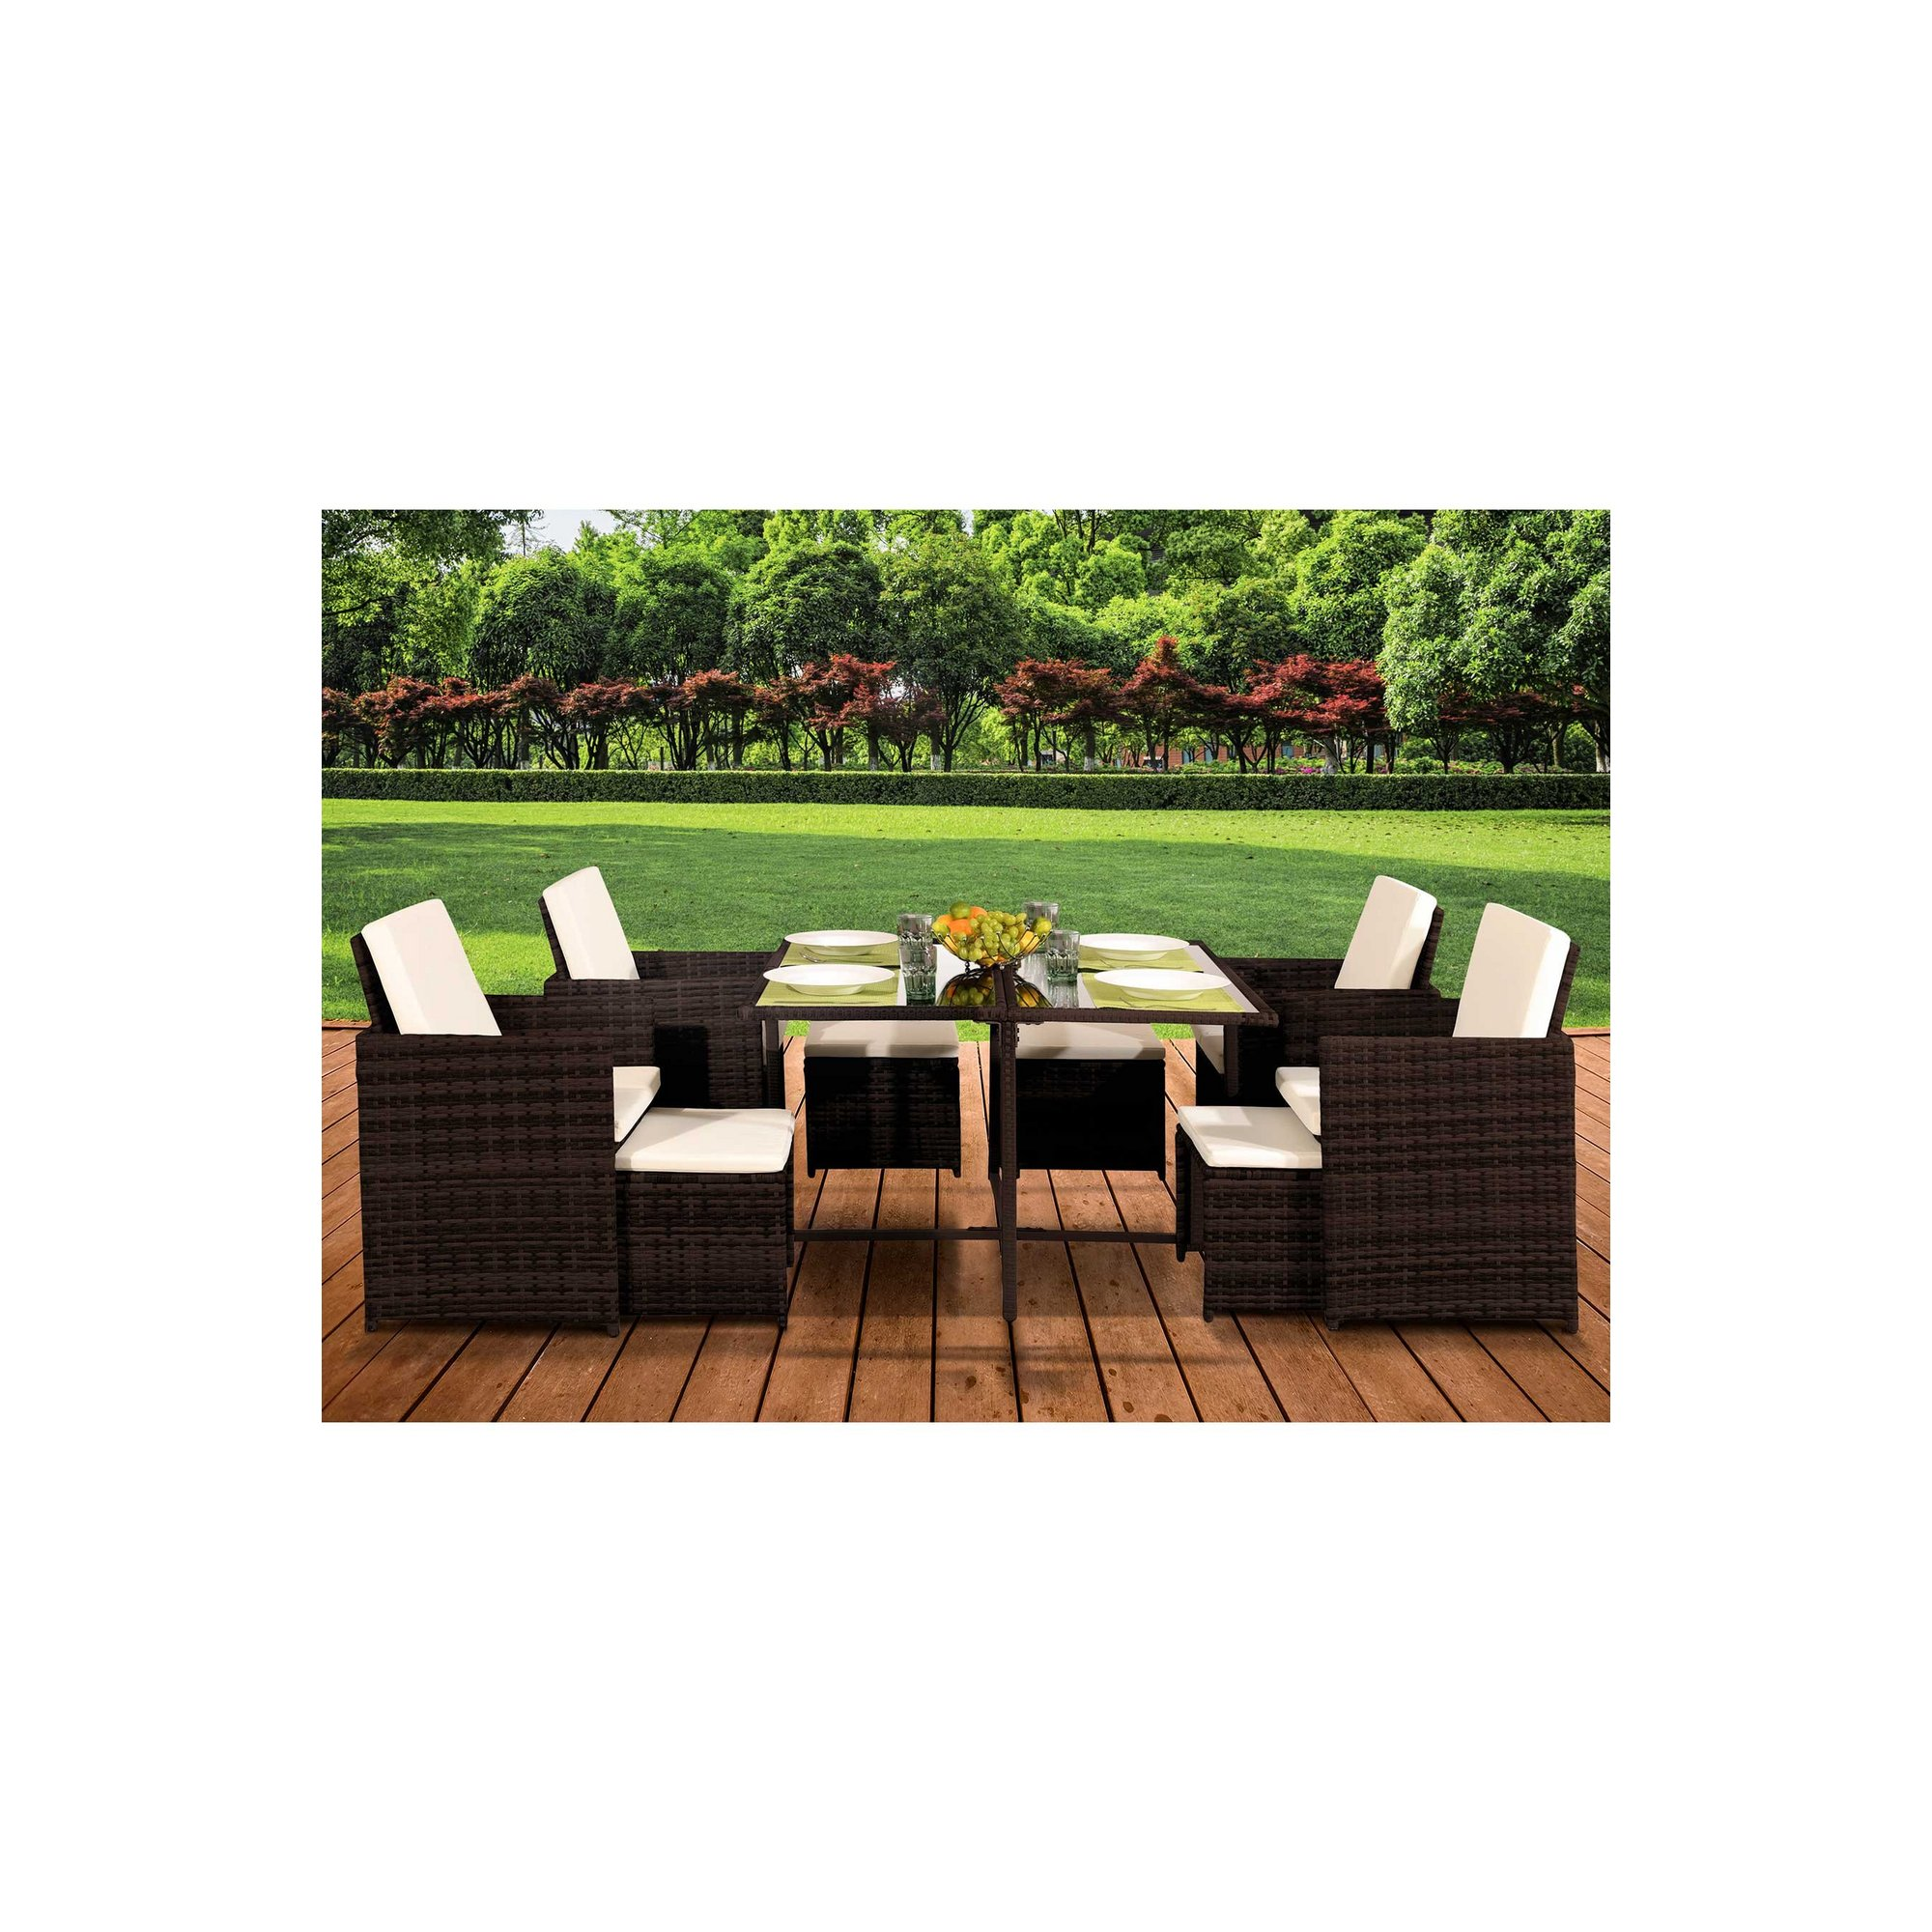 Image of 9-Piece Rattan Cube Dinning Set with Cover